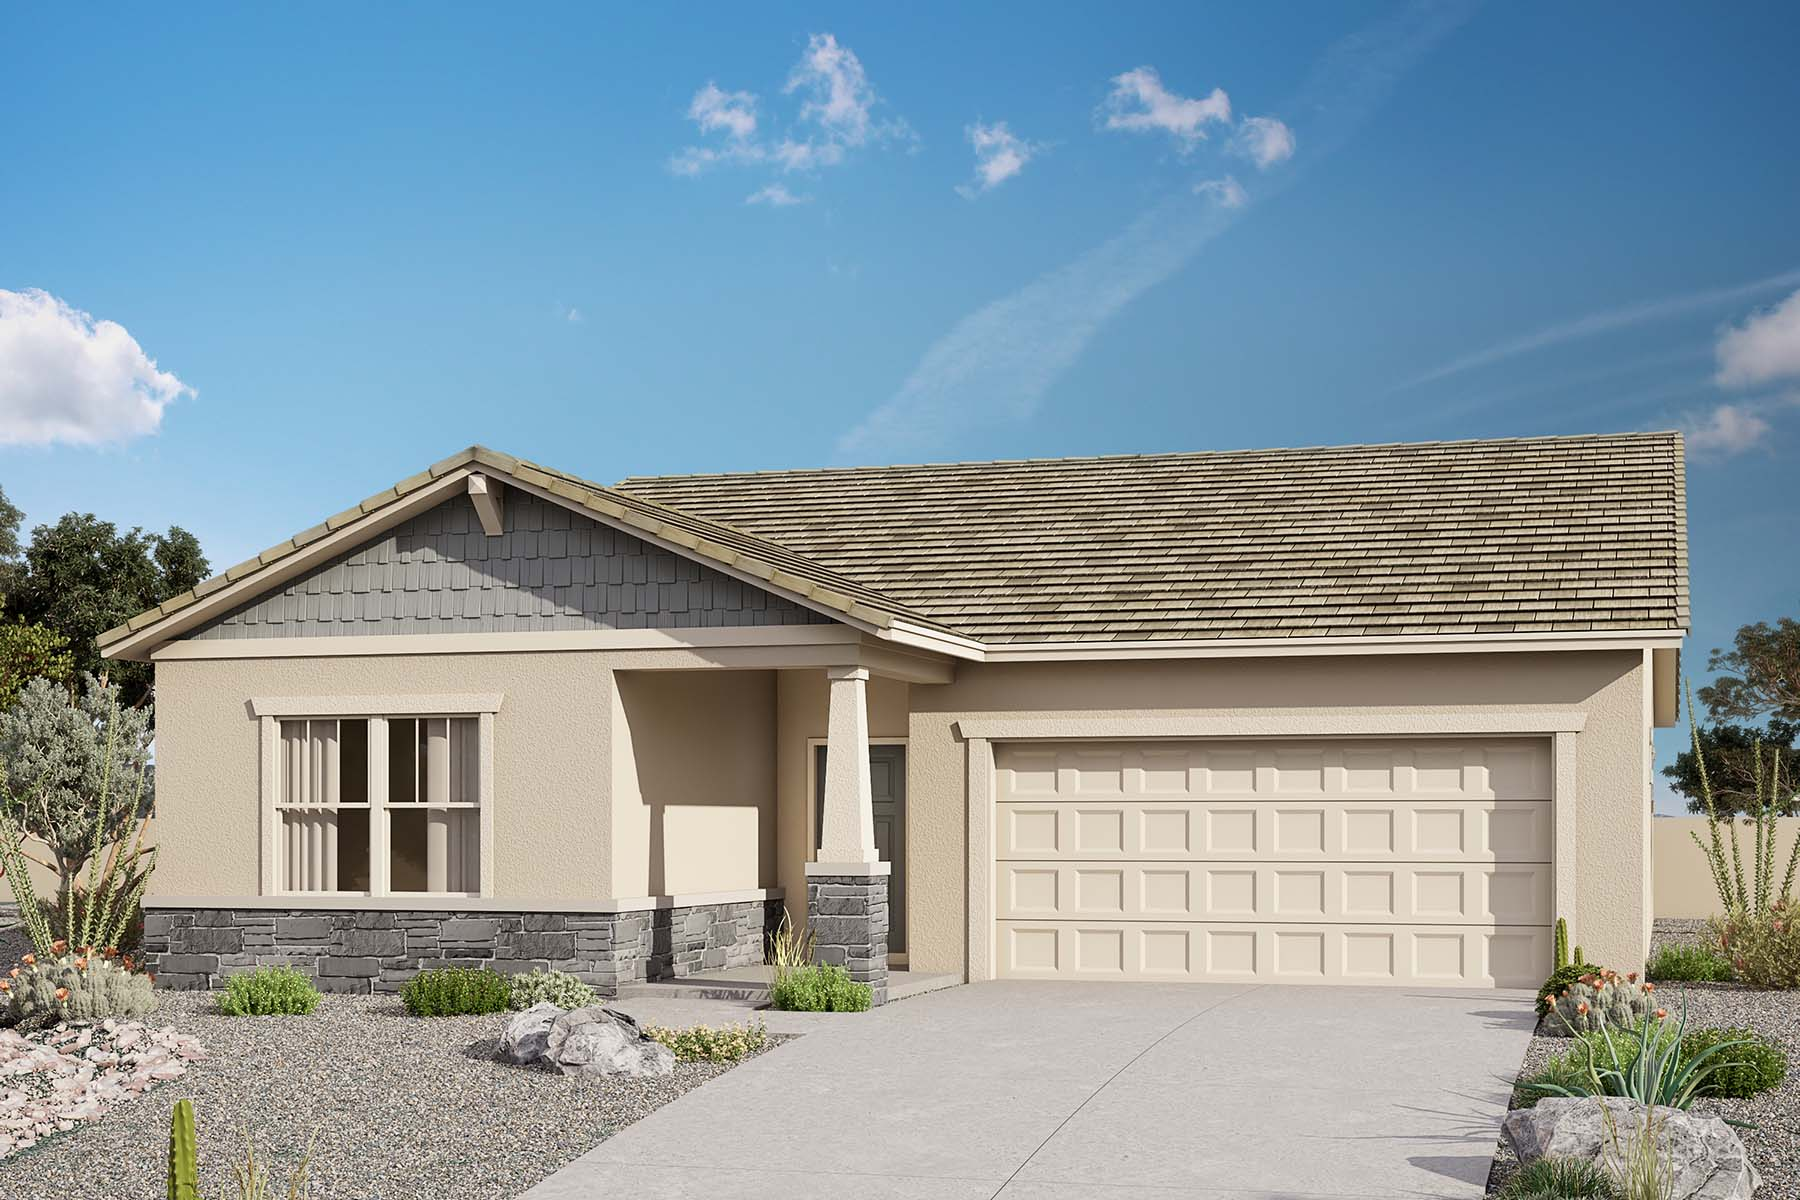 Joslin Plan  at Solano at Sienna Hills in Buckeye Arizona by Mattamy Homes